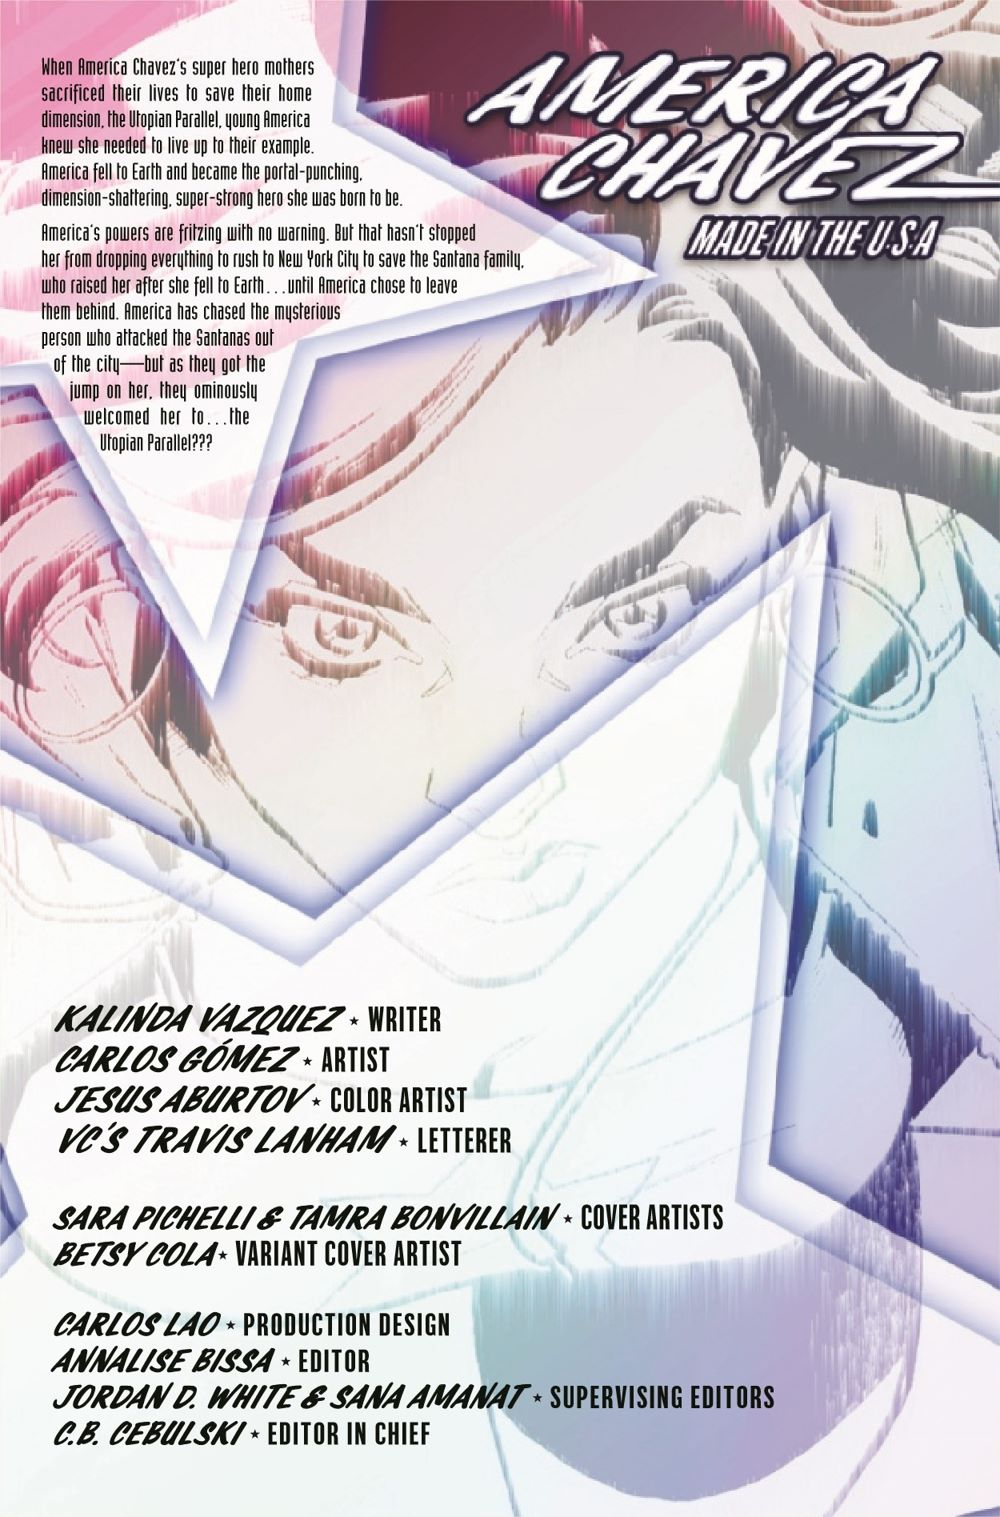 AMERCHAVEZUSA2021003_Preview-2 ComicList Previews: AMERICA CHAVEZ MADE IN THE U.S.A. #3 (OF 5)